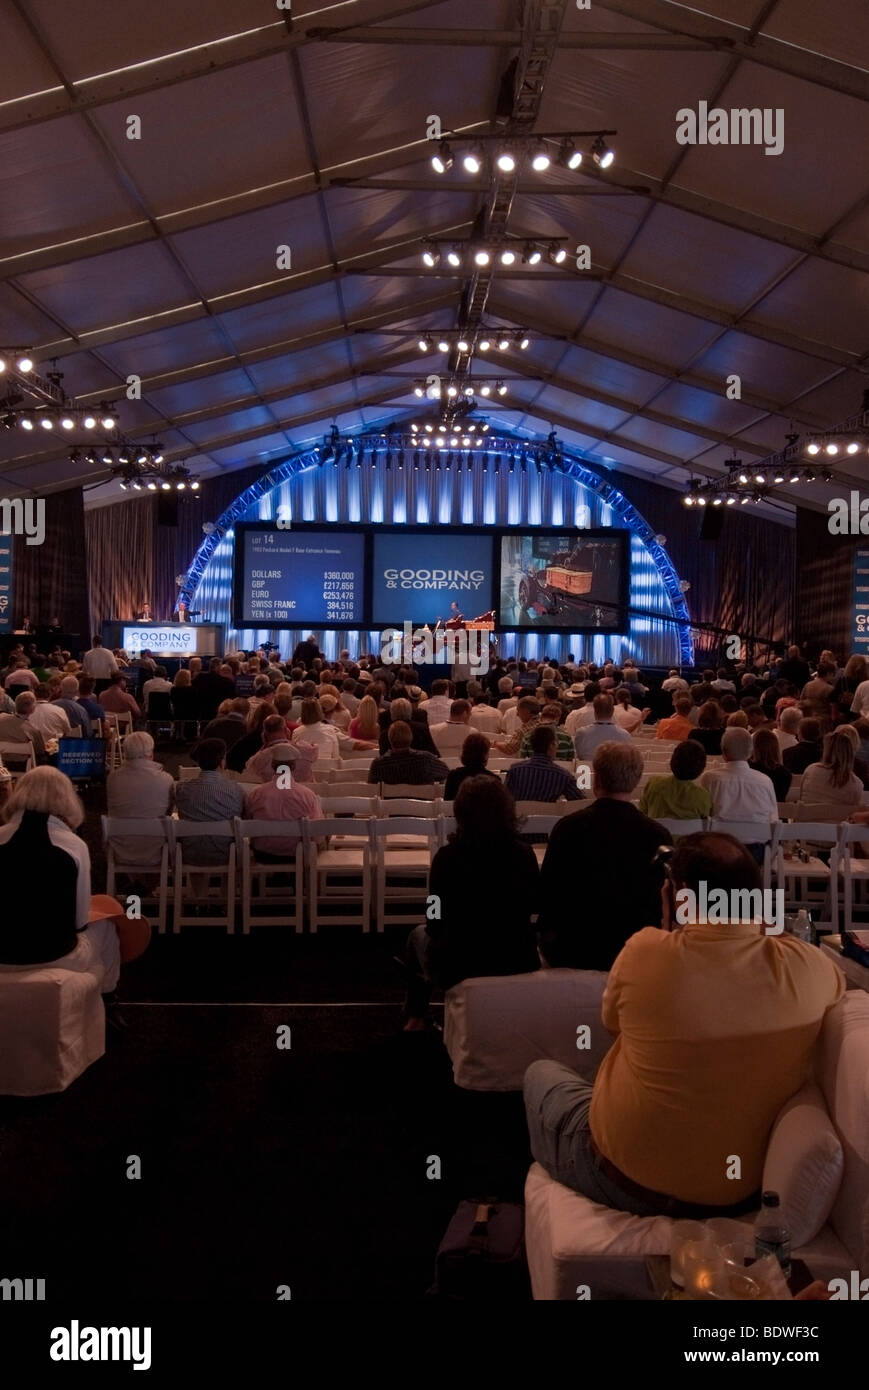 Stage during the two-day auction by Gooding & Company at the Pebble Beach Concours d'Elegance - Stock Image